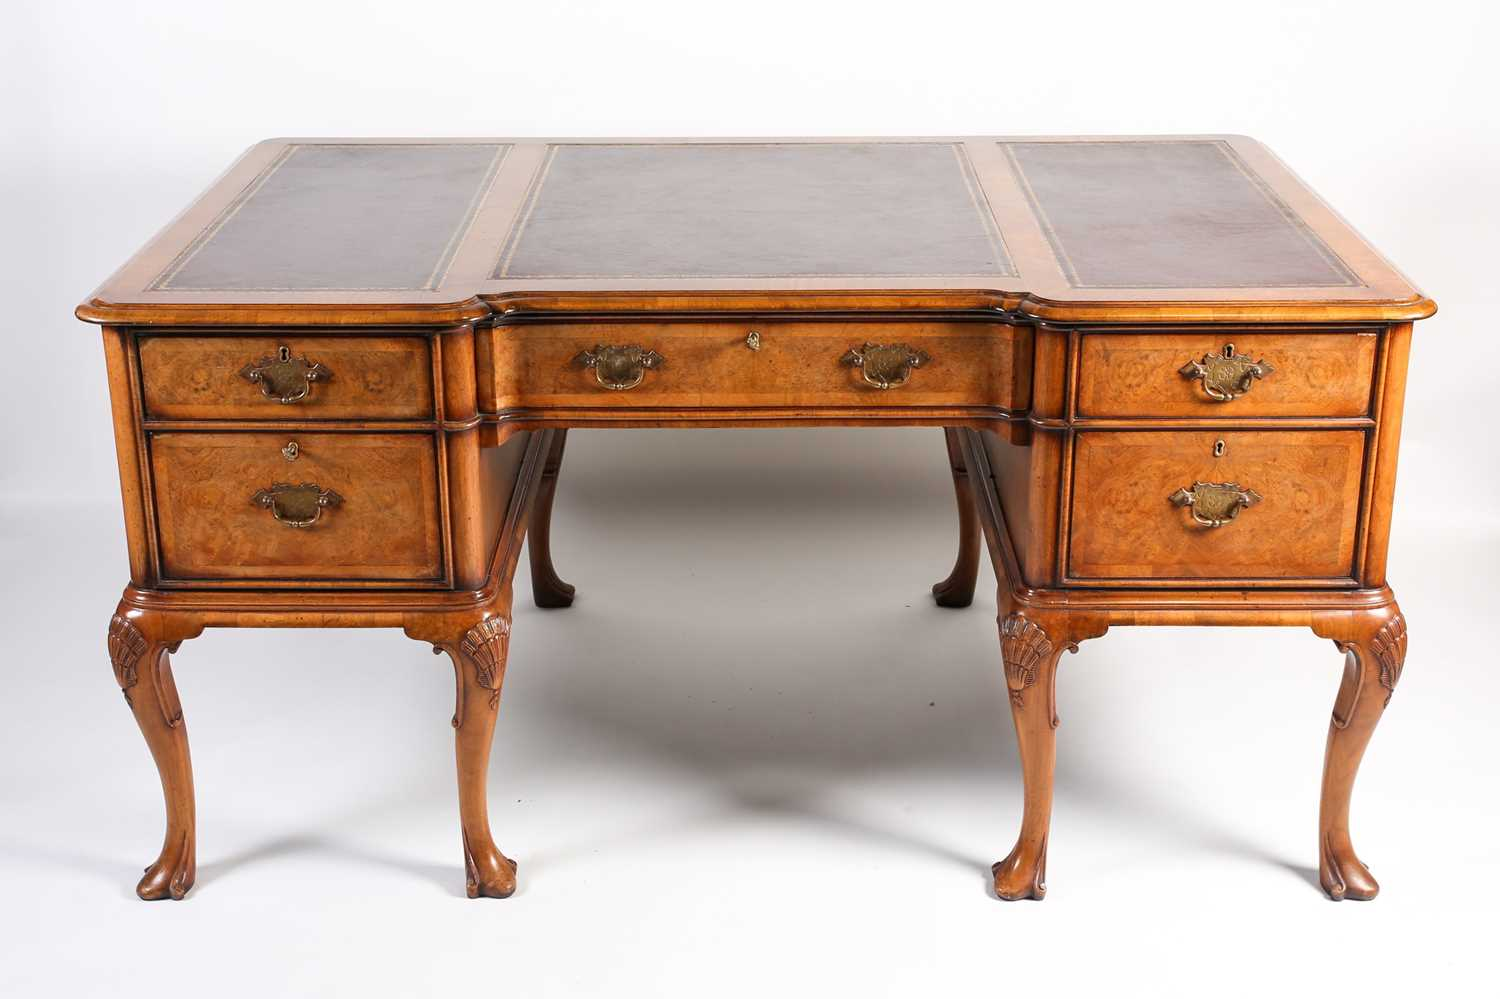 Titchmarsh & Goodwin Queen Anne style walnut writing desk leather breakfront drawers cabriole